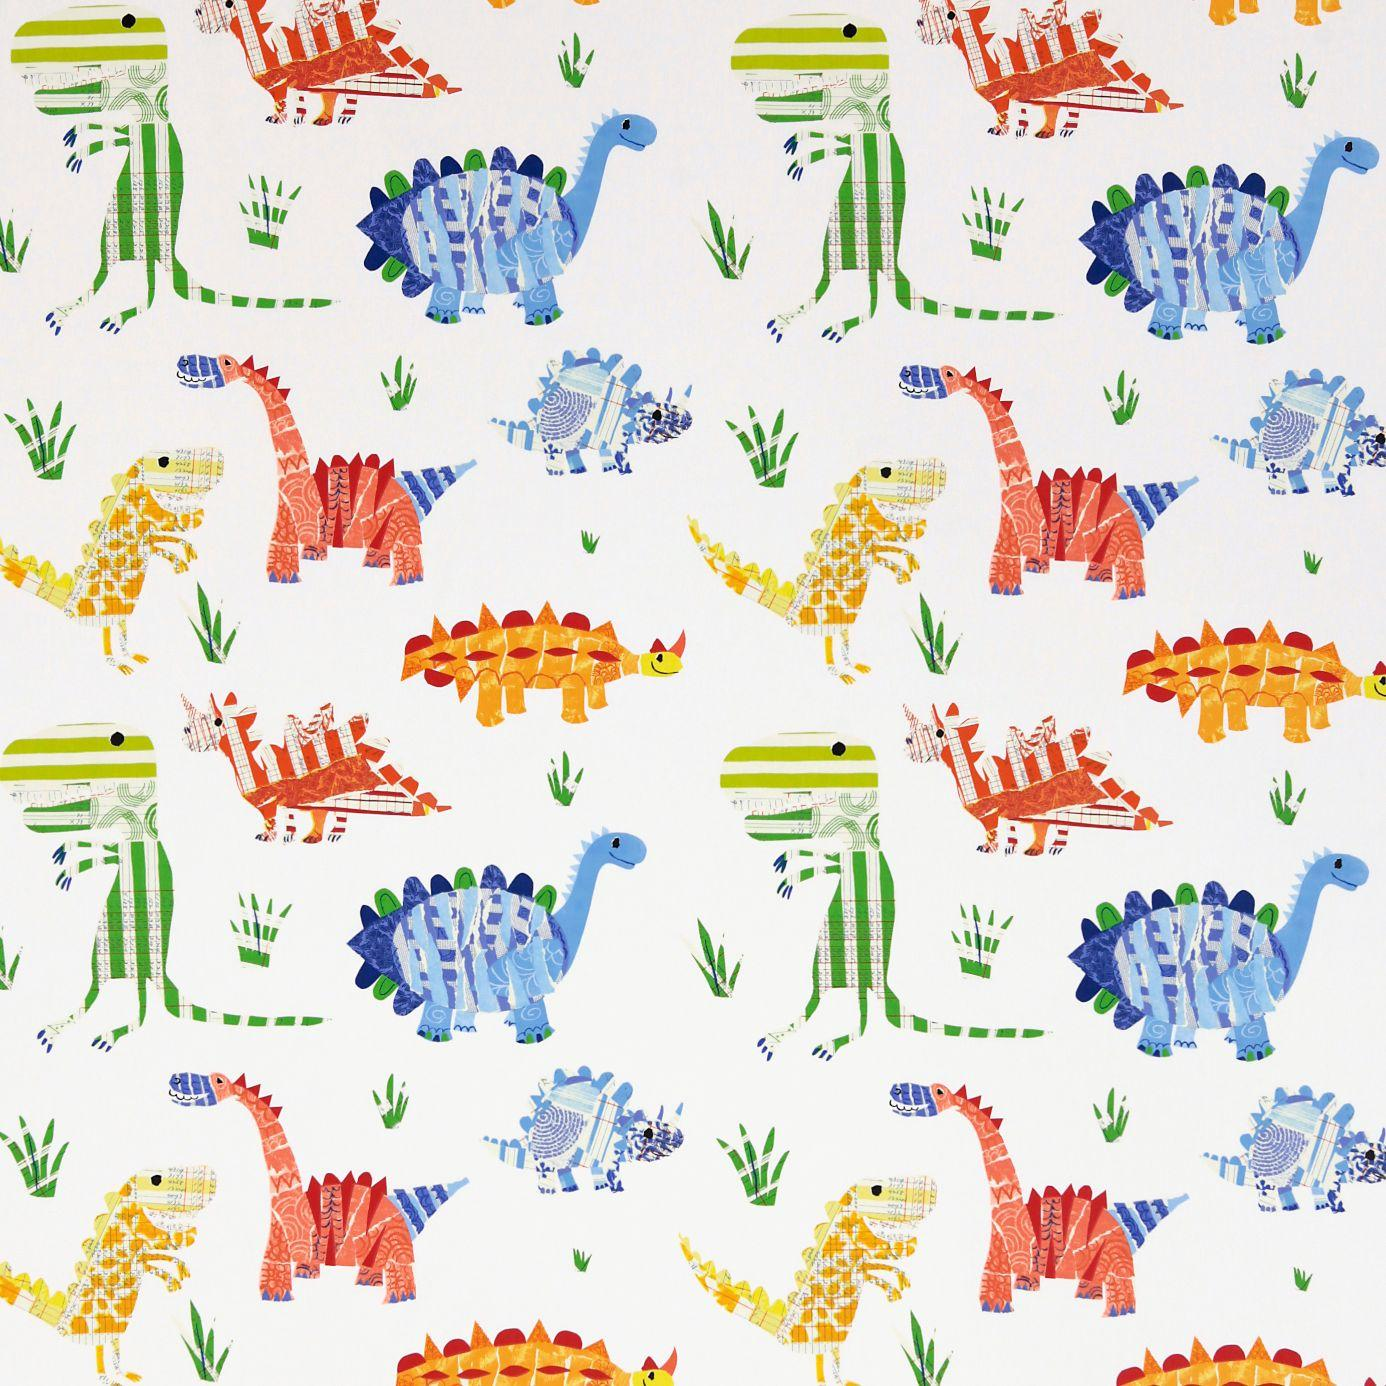 Jolly jurassic fabric aqua tangerine apple natural 3229 for Fabric for kids clothes